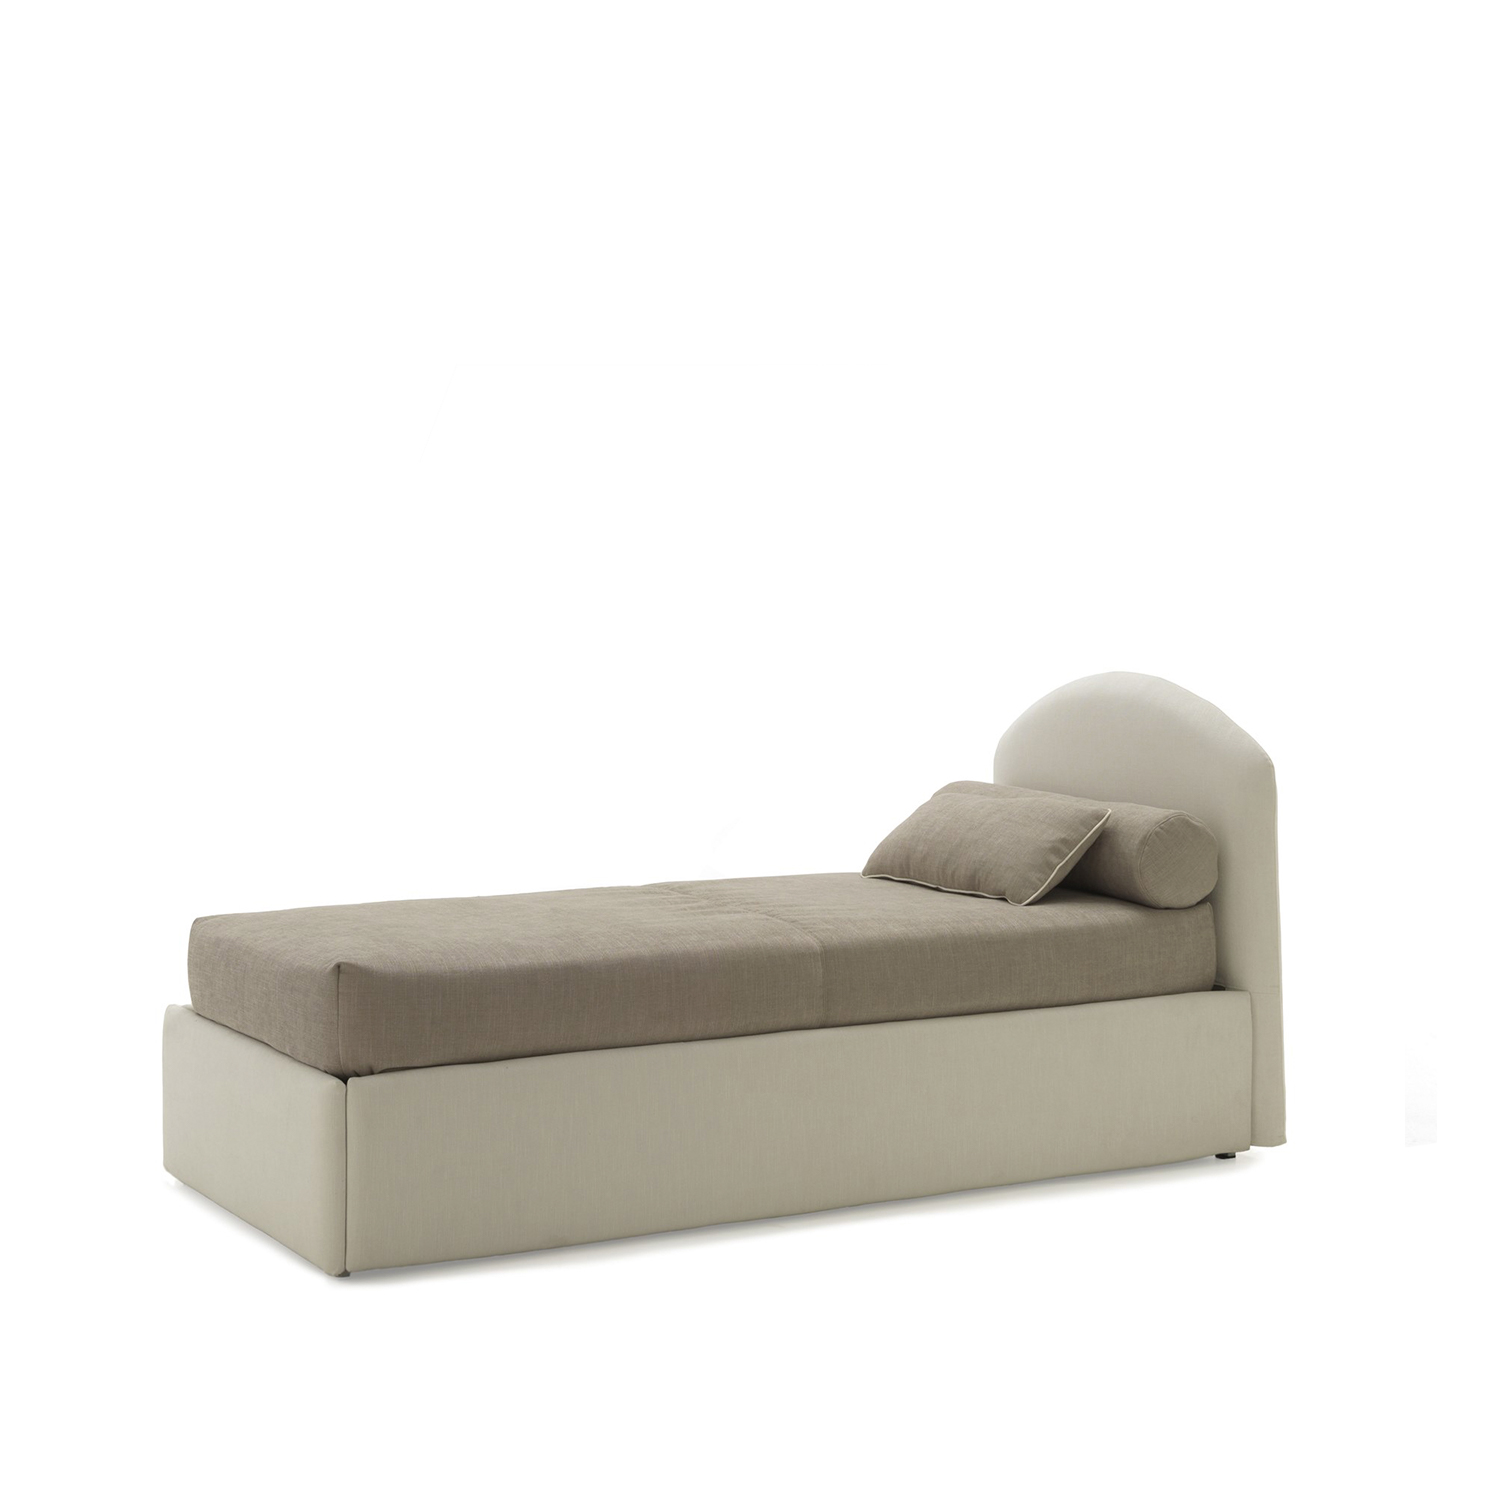 Neolia Sofa bed - The rounded headboard characterises the Neolia Program of sinlge beds, that offers many ideas for furnishing children's bedroom. The apparent simplicity has been achieved by careful research. On request all the models can be equipped with two drawers, with a pull-out slat for a second bed or with a roomy storage box concealed inside the upholstered base. The bed can be covered with any leather, eco-leather or fabric available in our sample book or also with fabric supplied by the customer.  All beds are available in different sizes and frame options. Please enquire for more details. | Matter of Stuff